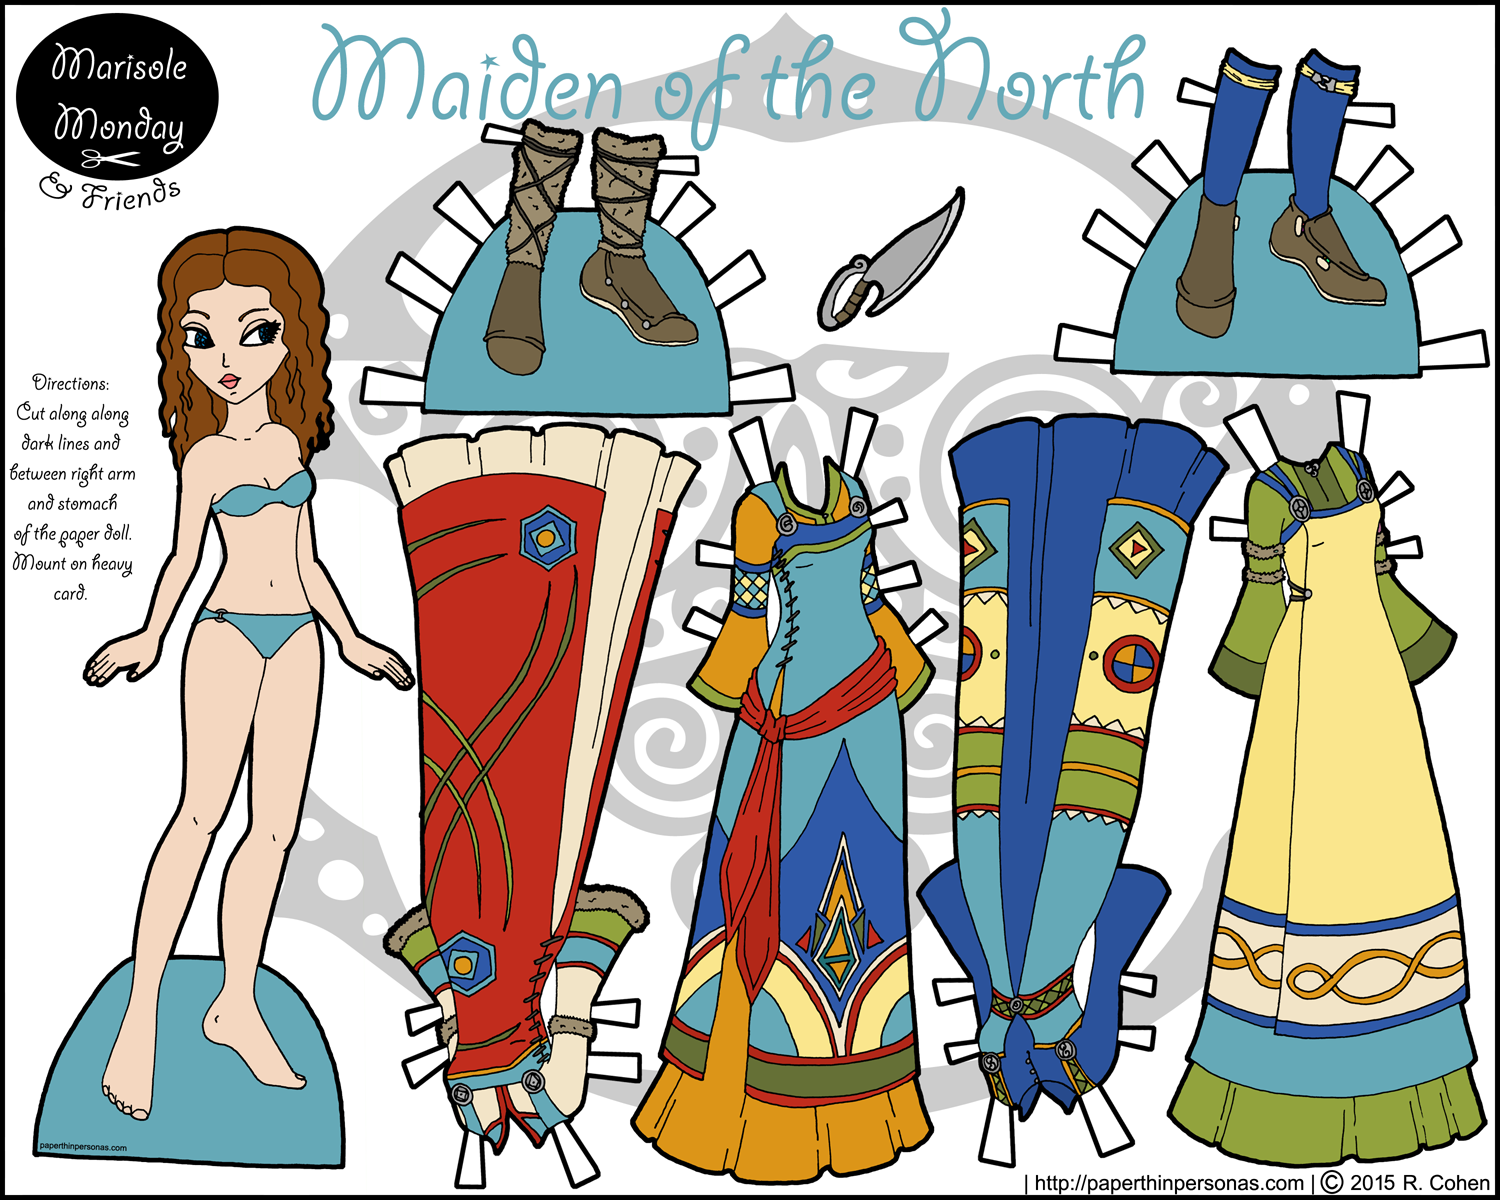 A fantasy printable paper doll inspired by Vikings with four dresses, two pairs of shoes and curly brown hair. Free to print from PaperThinPersonas.com